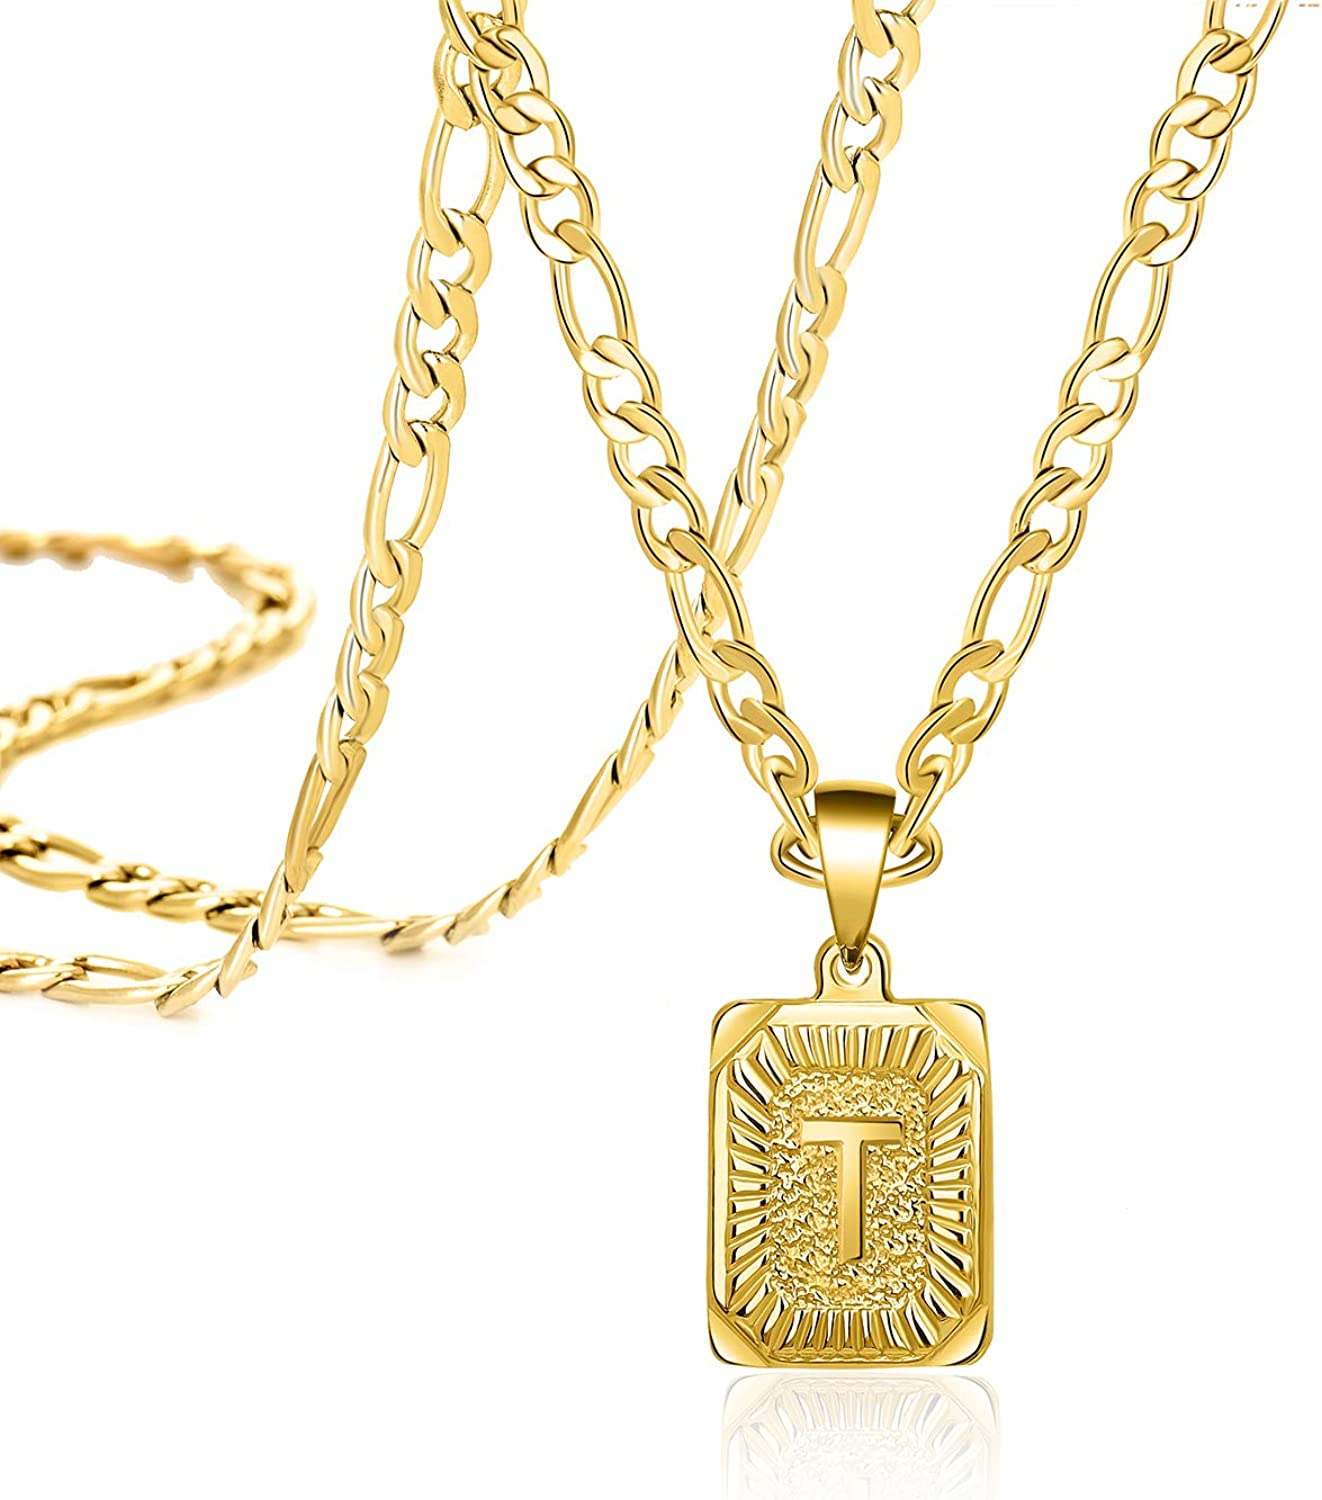 JoycuFF 18K Gold Filled Initial Pendant Necklace Letter Beauty products Square Dallas Mall A